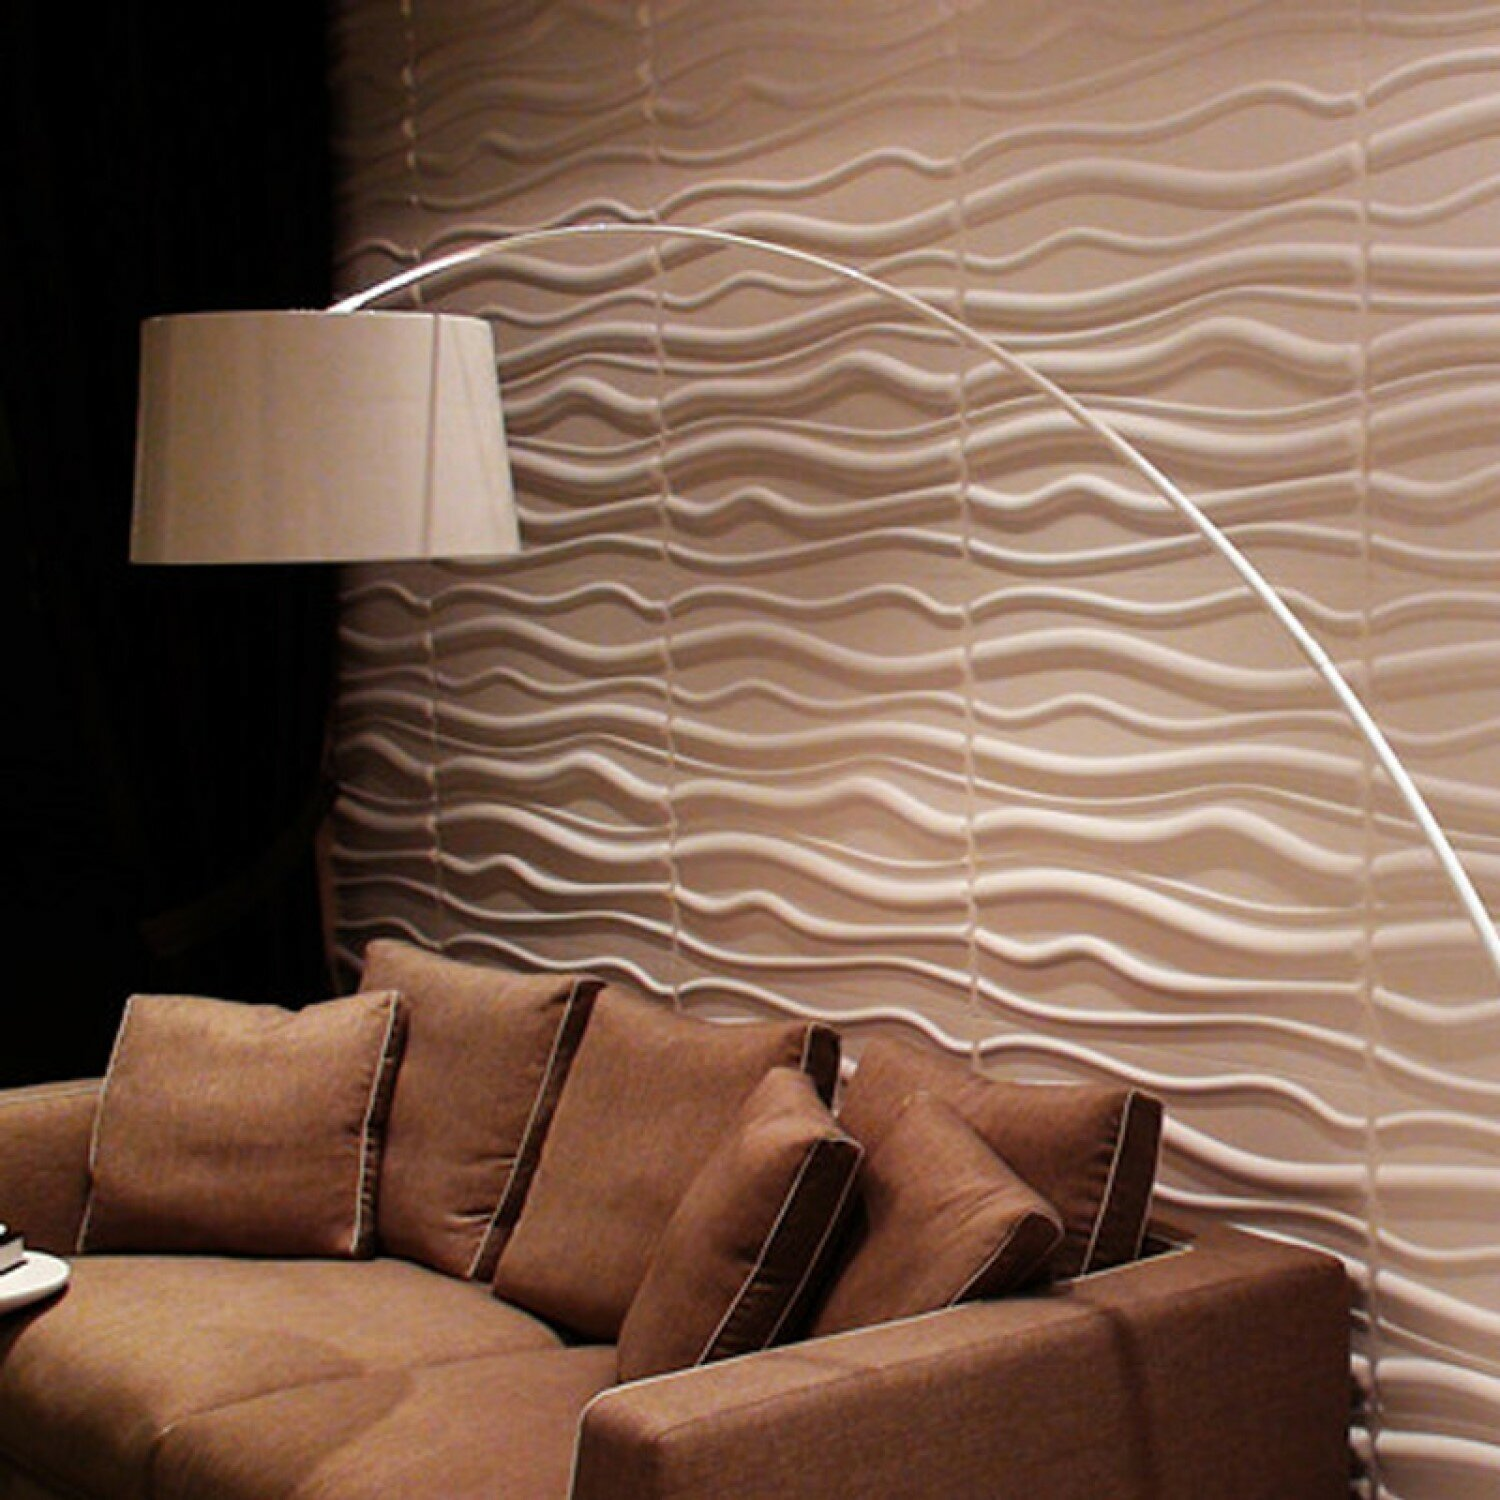 E Joy 19 7 X 19 7 Vinyl Wall Paneling In White Wayfair